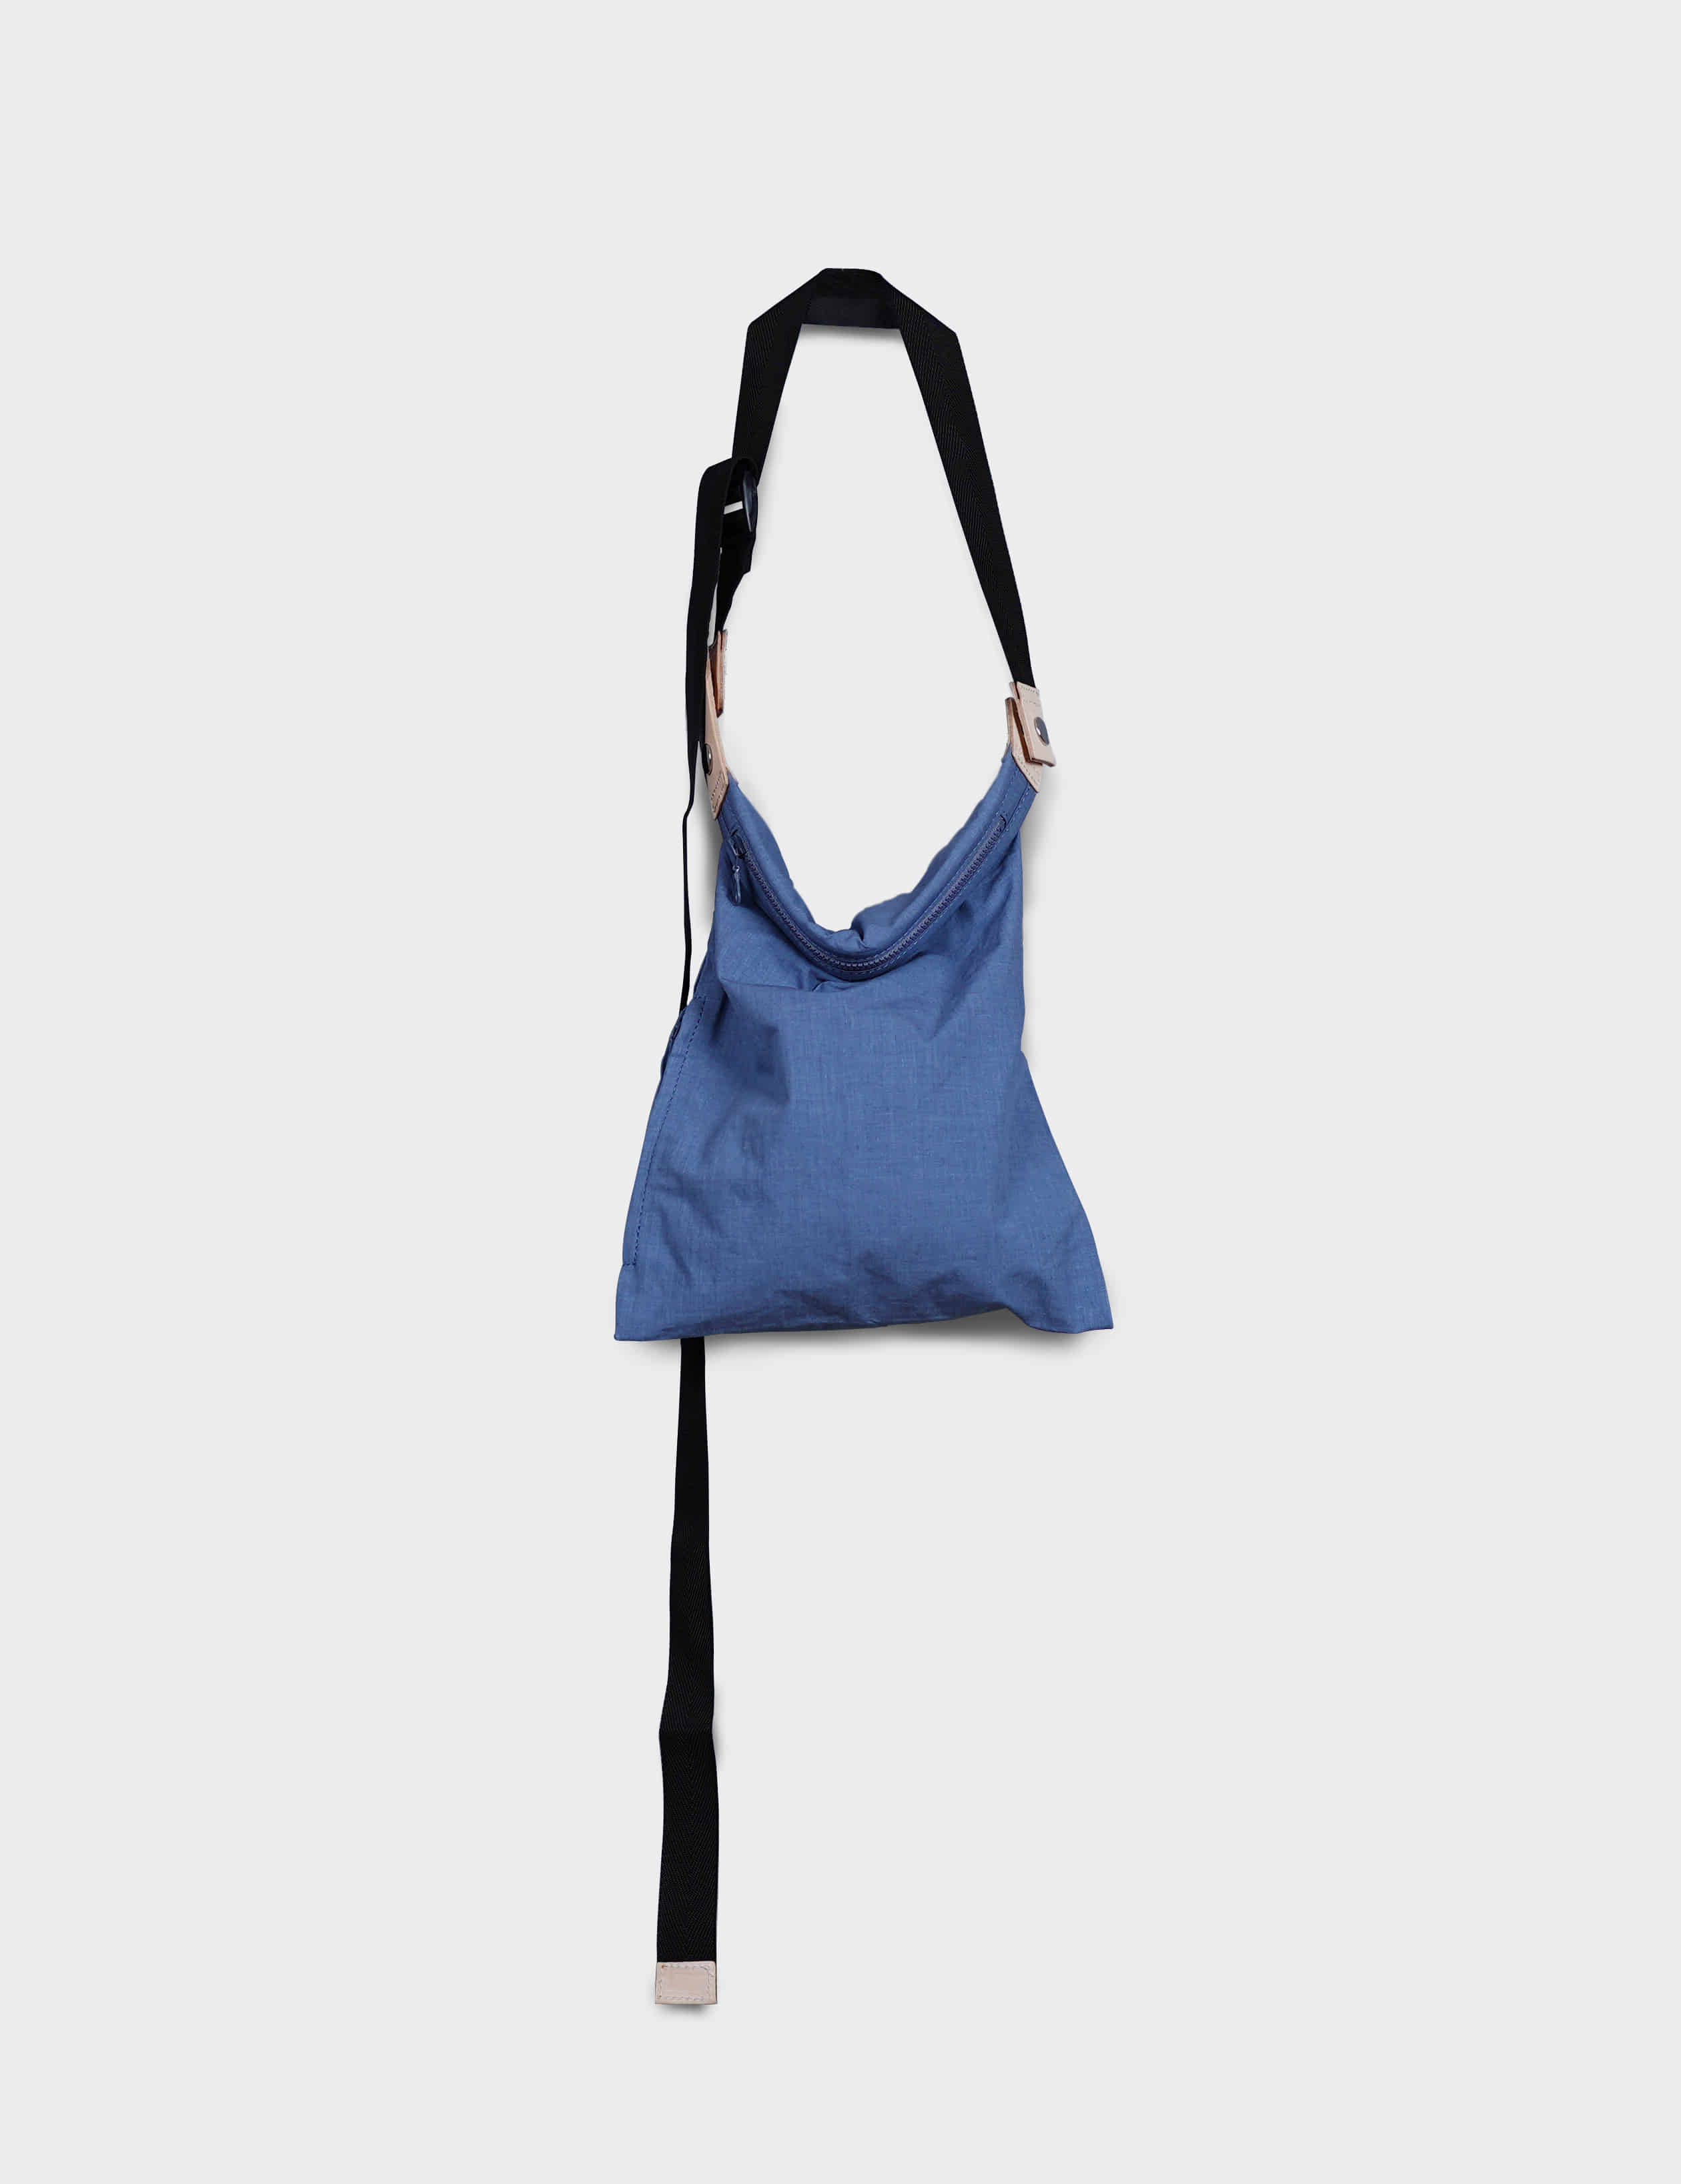 WRAP BAG - XS (BLUE)